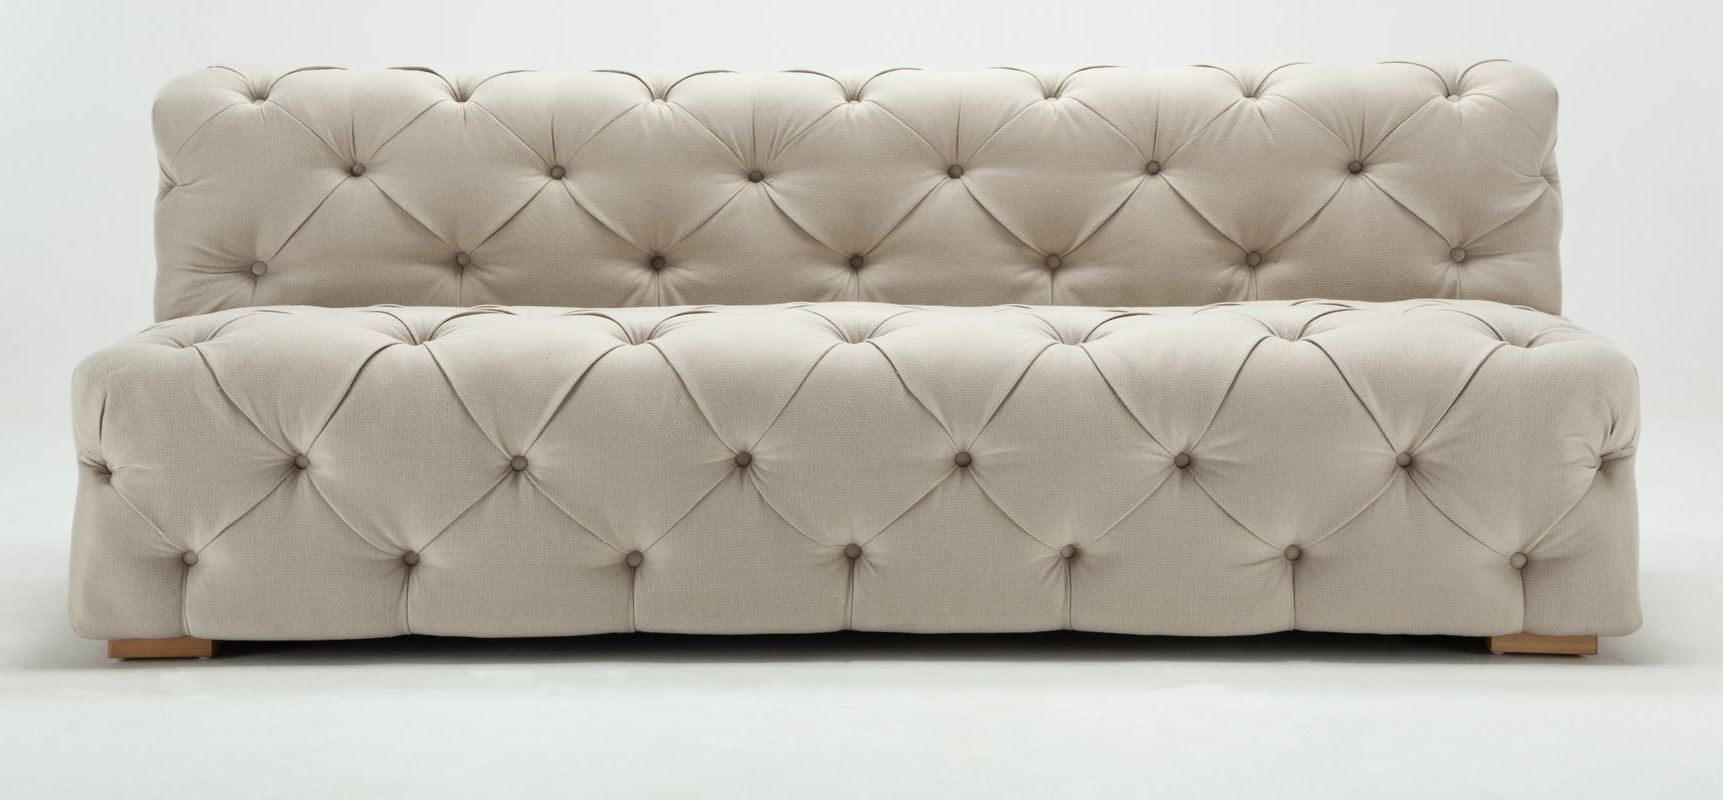 Small Armless Sofas Intended For Widely Used Rosdorf Park Pratt Tufted Armless Sofa & Reviews (View 14 of 15)